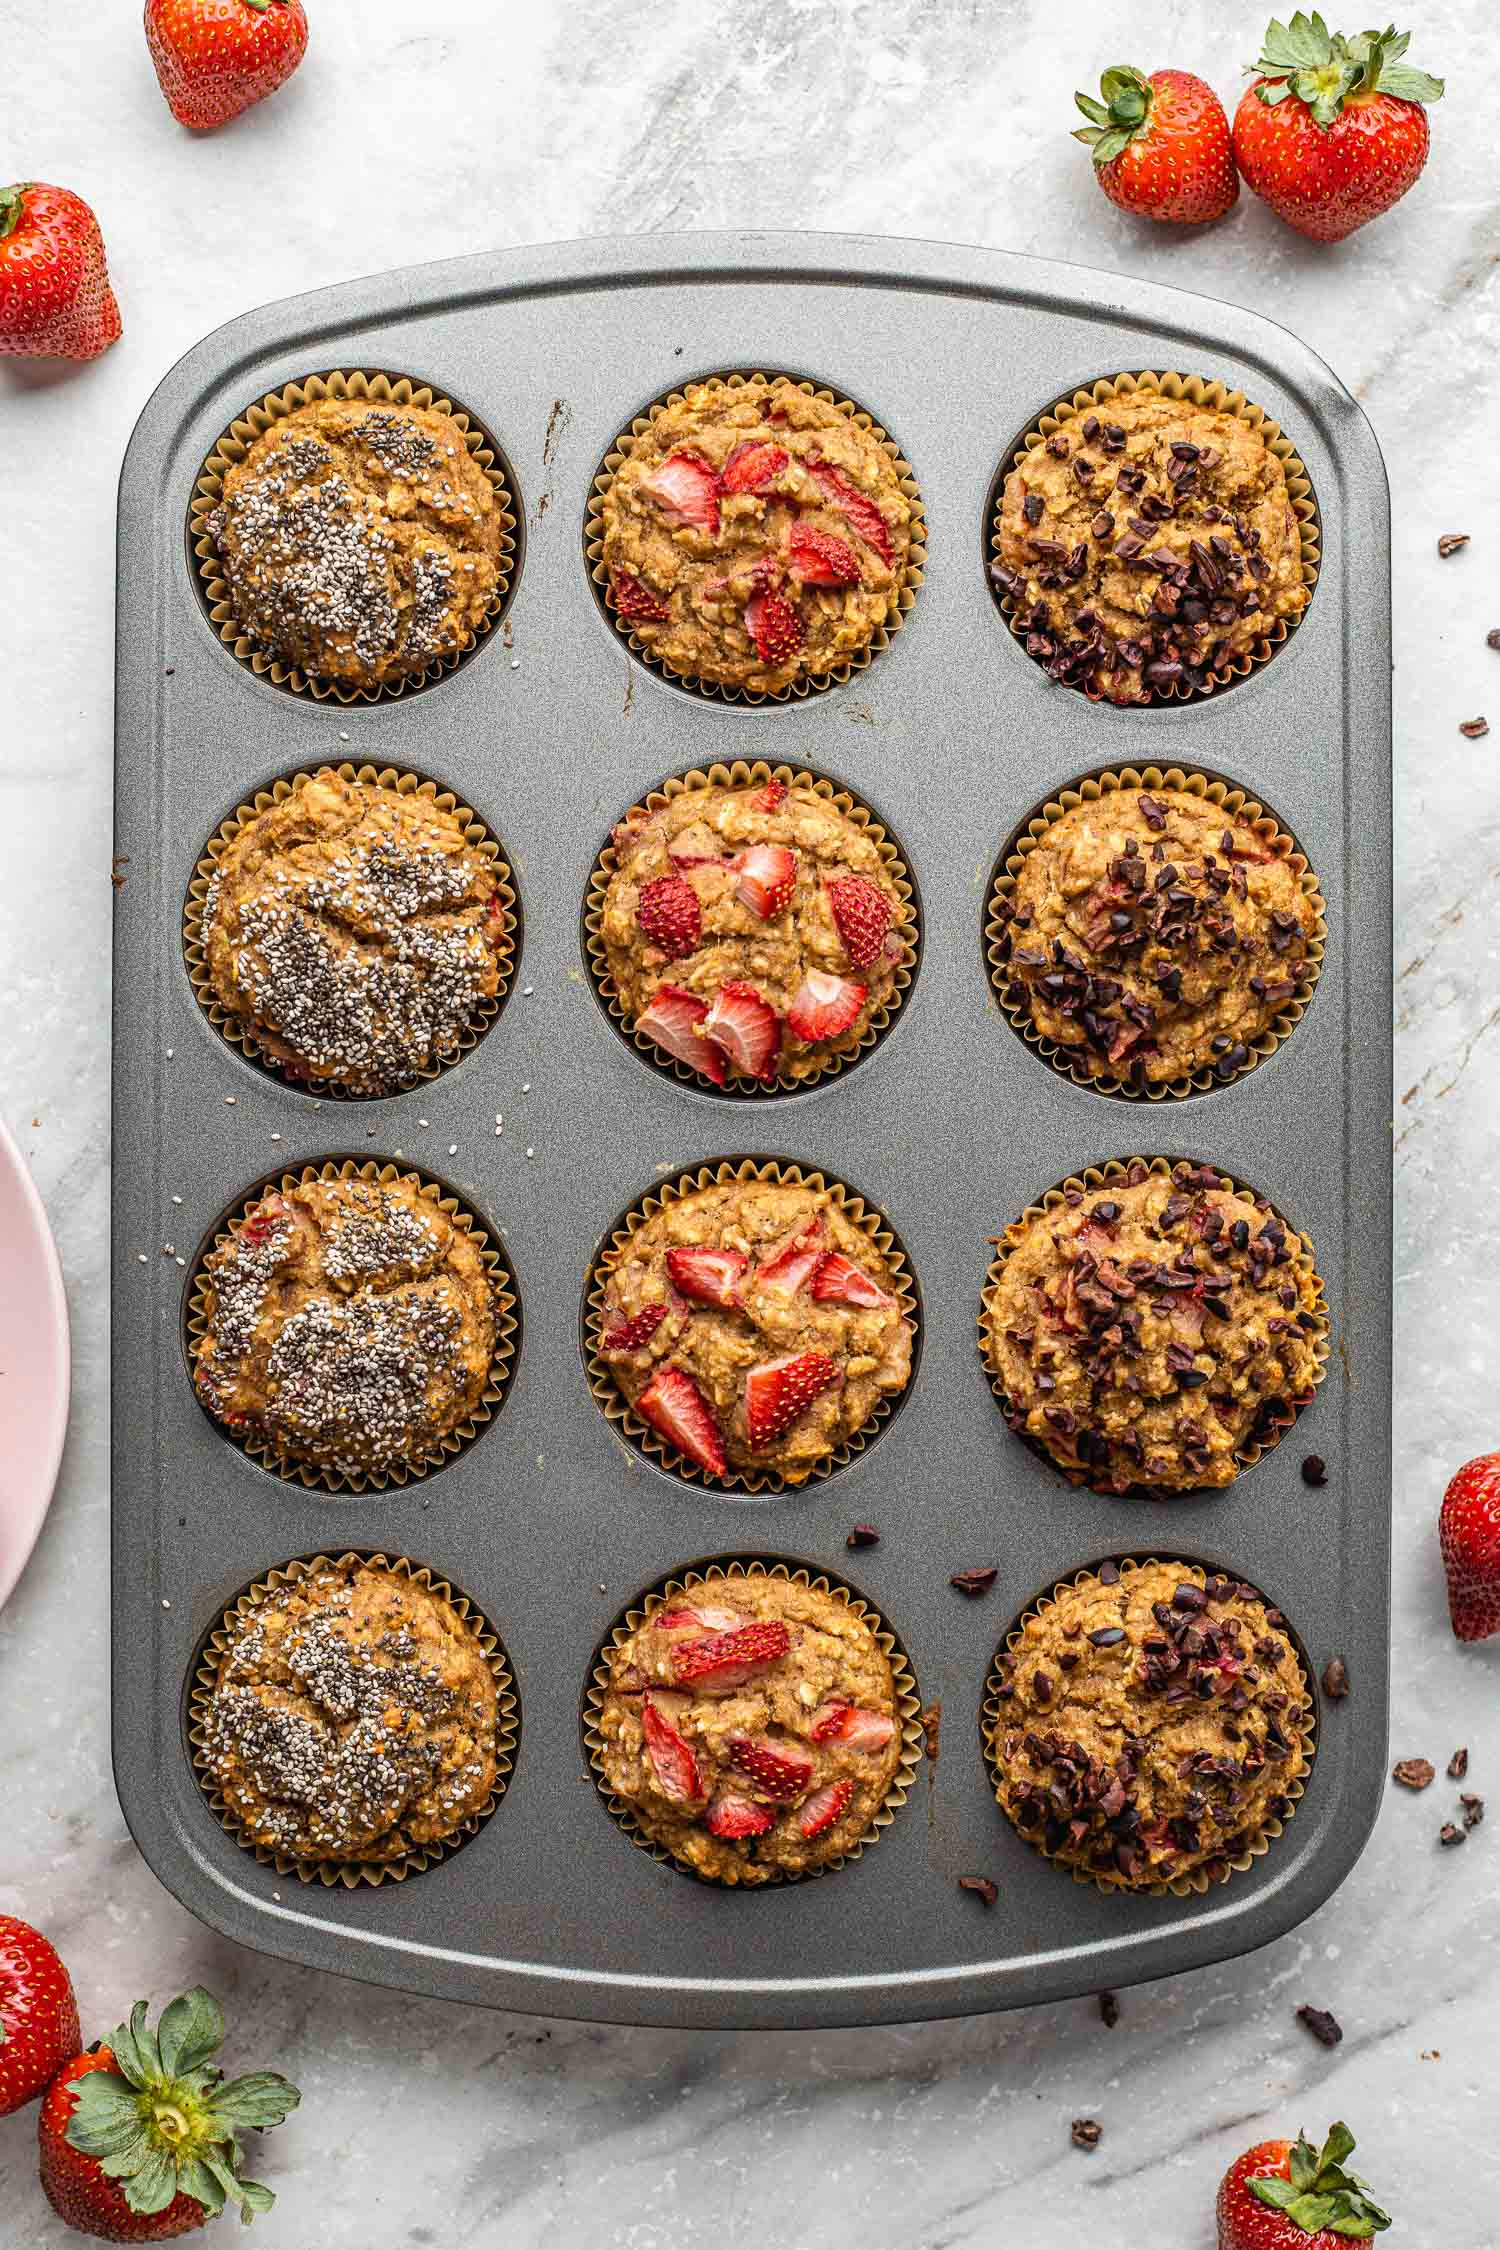 healthy, colorful, strawberry banana muffins sit in a muffin baking pan